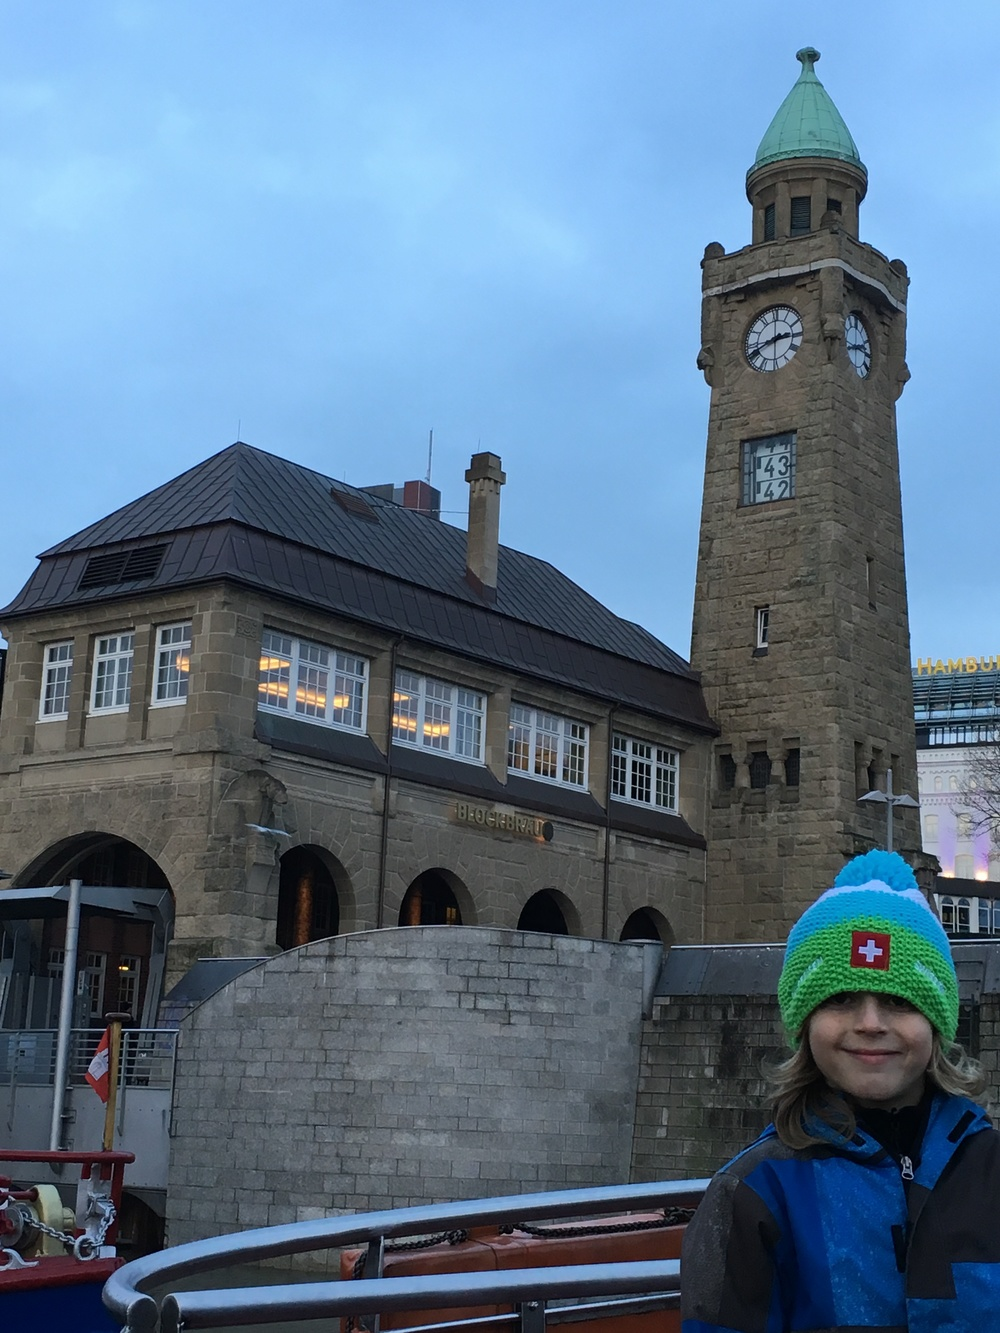 At the Landungsbrücken Tower, they show the current time and tide level. Photo: Bruny Nieves